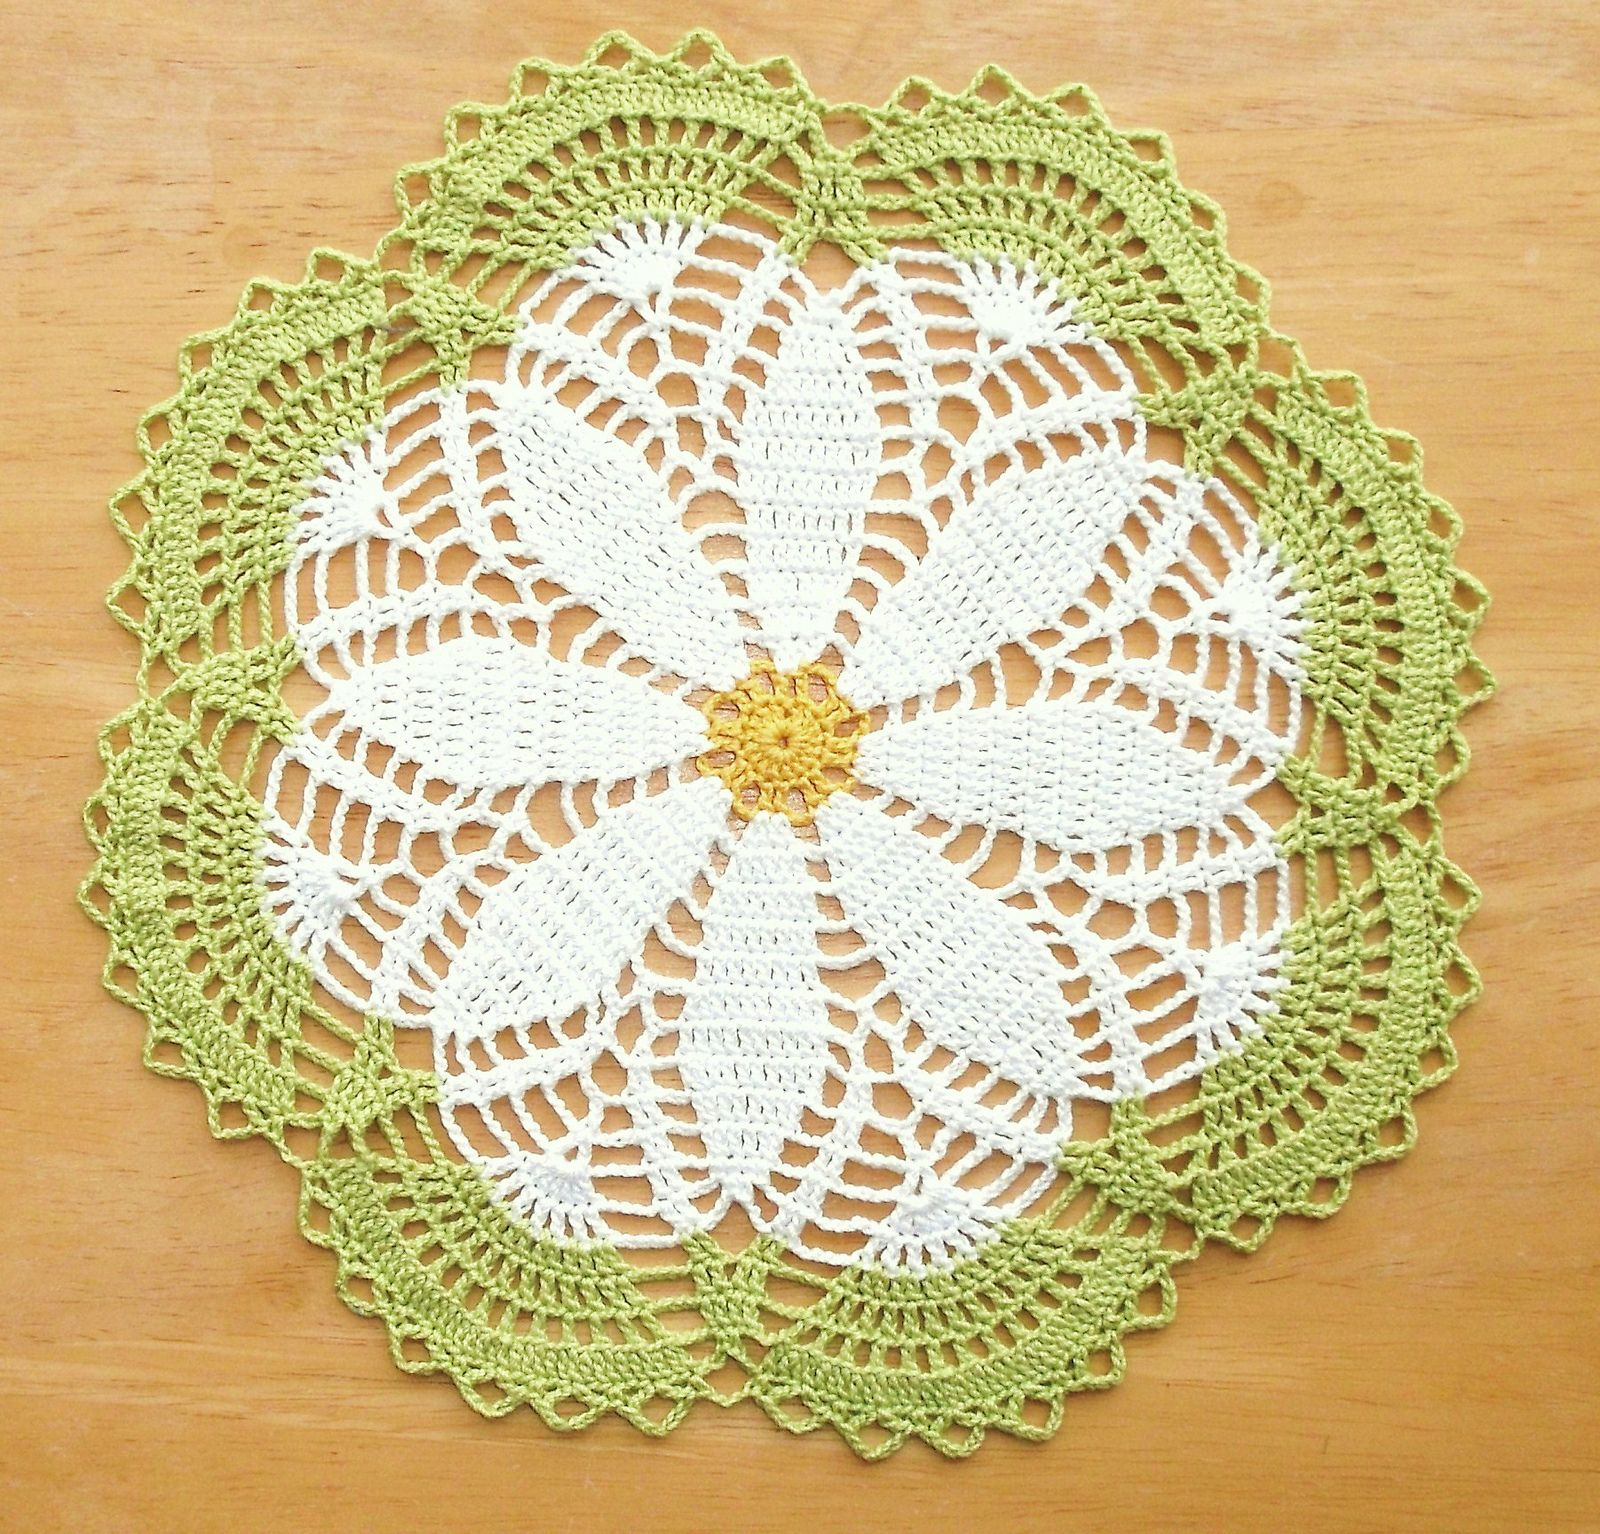 Ravelry sweet daisy by aly hymel doilies pinterest ravelry ravelry sweet daisy pattern by aly hymel bankloansurffo Image collections